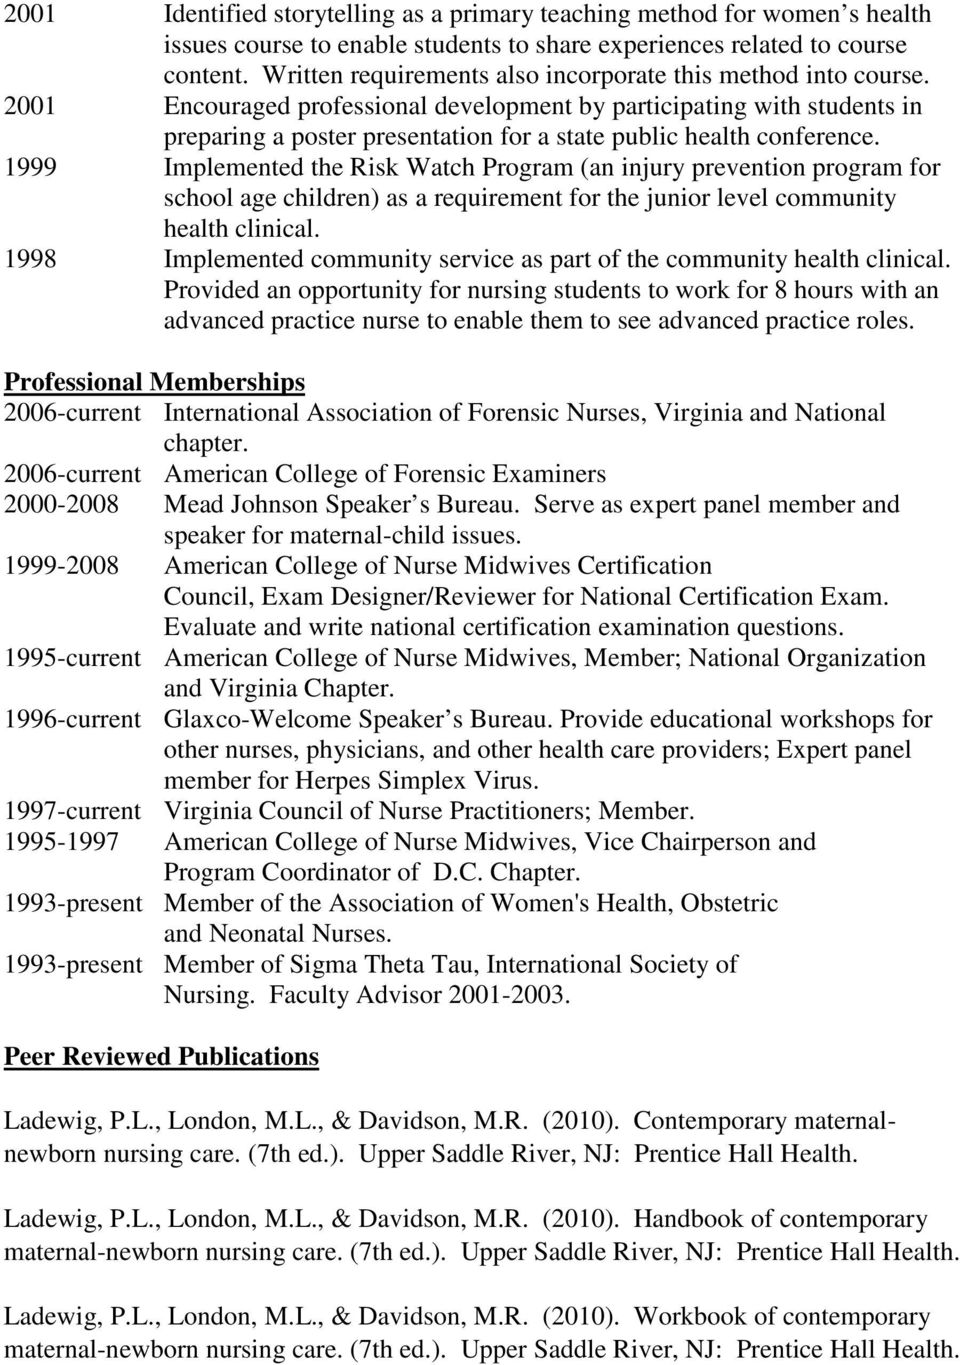 2001 Encouraged professional development by participating with students in preparing a poster presentation for a state public health conference.